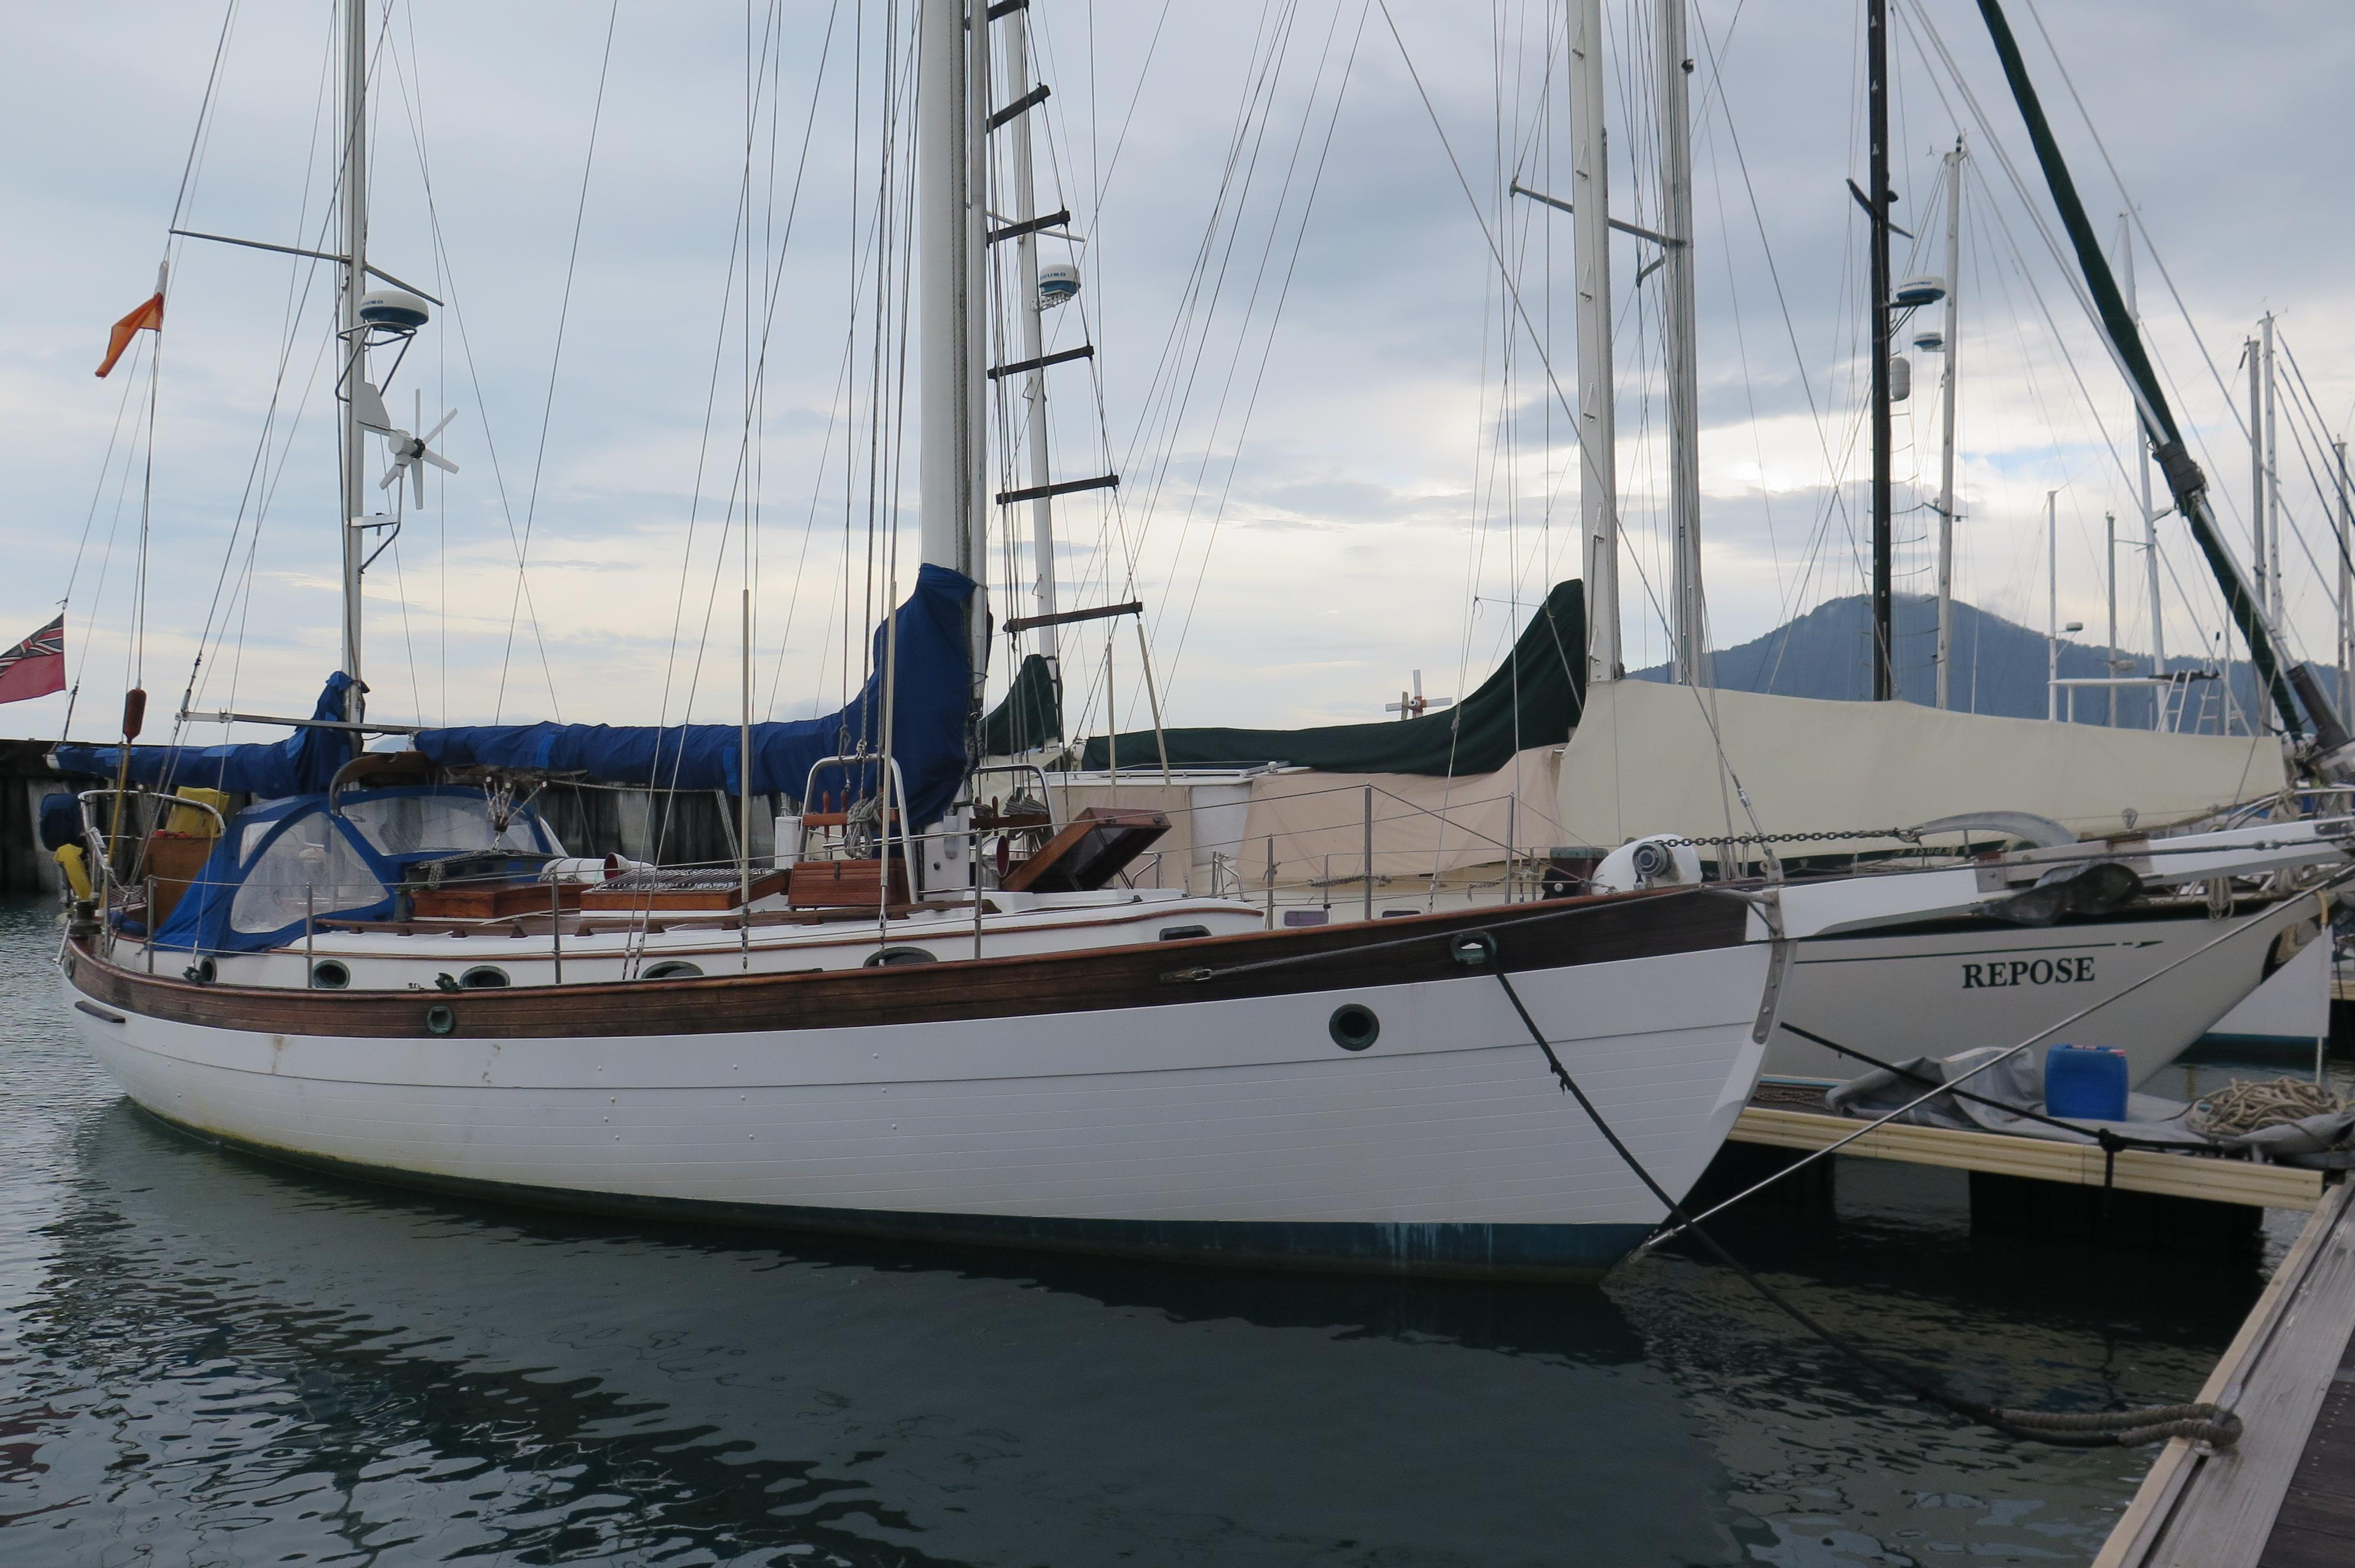 6085652_20170127193538693_1_XLARGE&w=4000&h=2664&t=1485577115000 1981 hans christian 43 sail boat for sale www yachtworld com Simple Boat Wiring Diagram at n-0.co